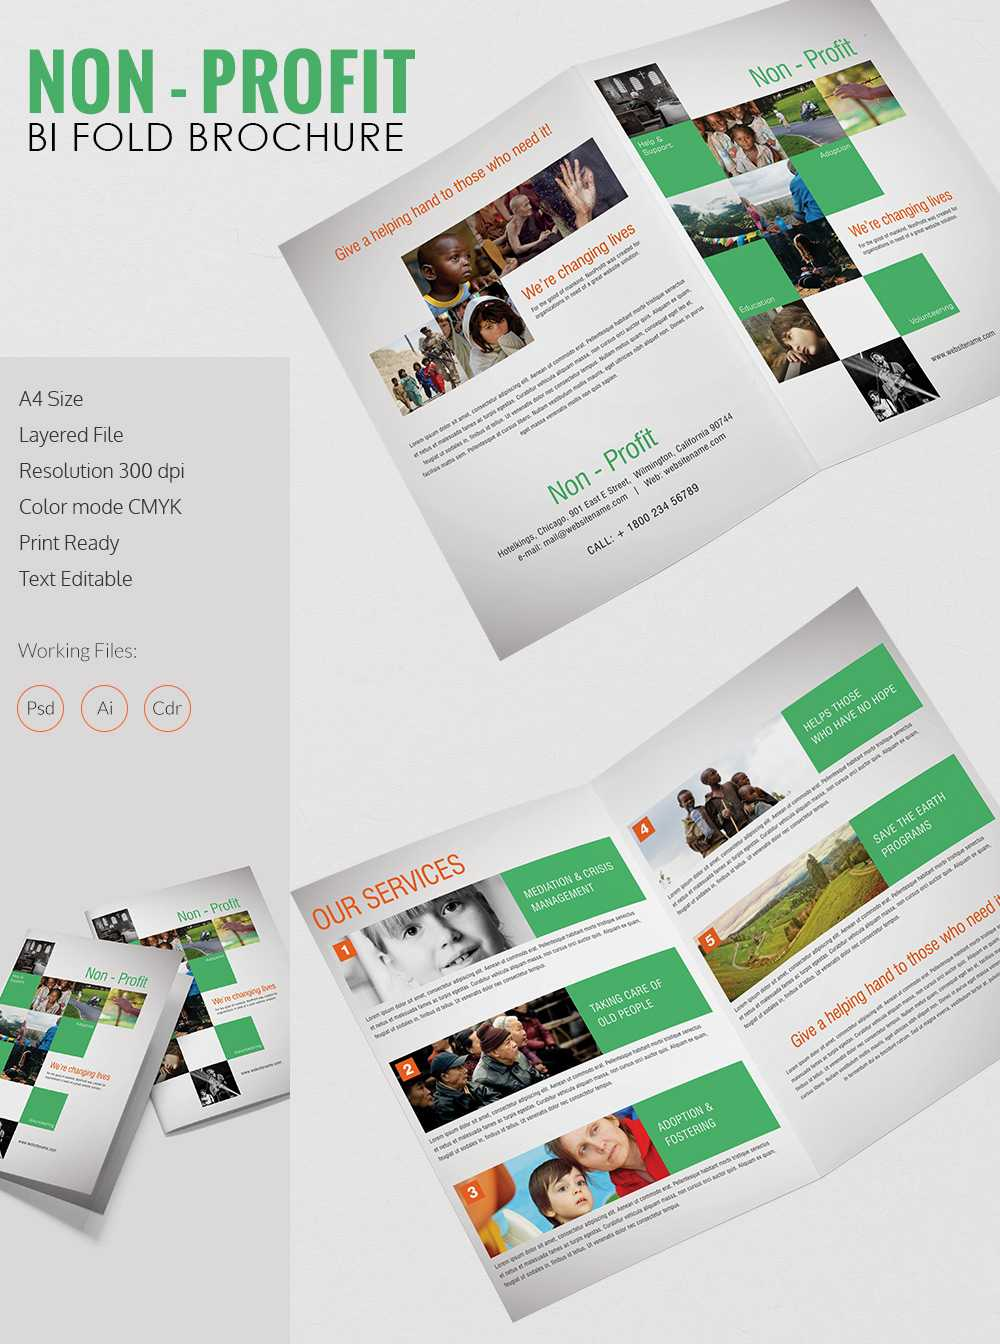 013 Template Ideas Bi Fold Brochure Free Half Page With Regard To Half Page Brochure Template